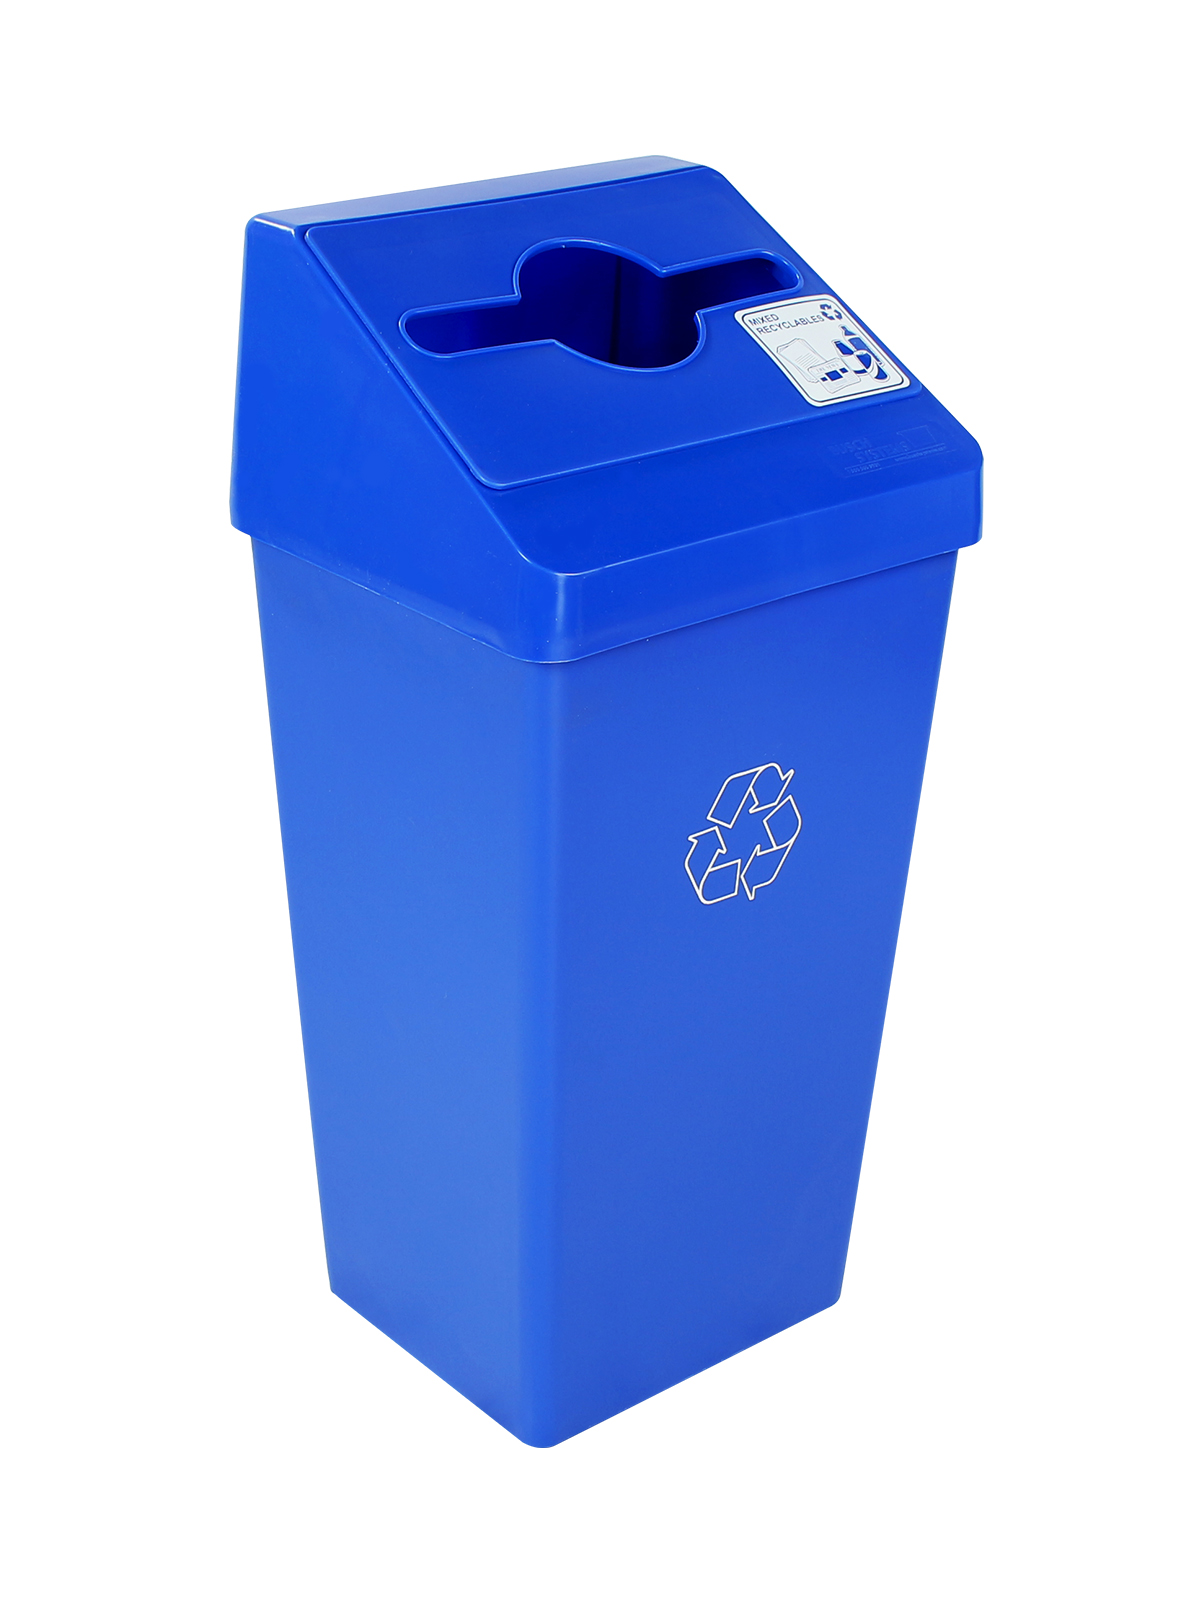 SMART SORT - Single - Mixed Recyclables - Mixed - Blue